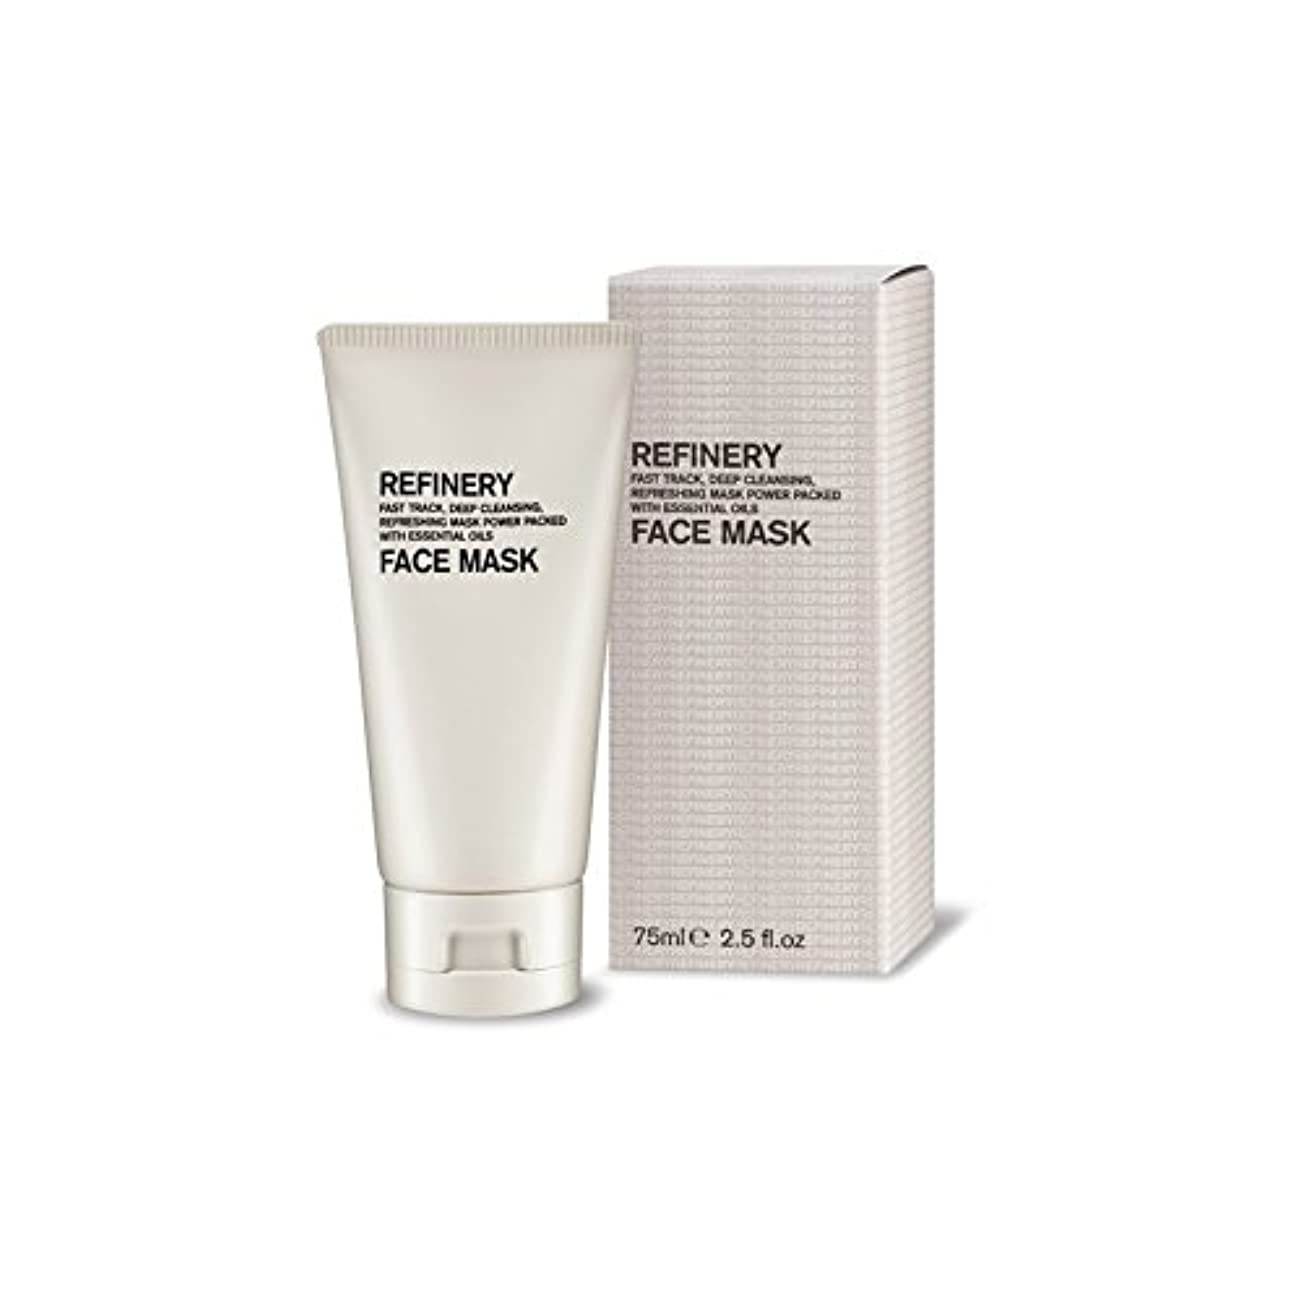 The Refinery Face Mask 75ml (Pack of 6) - 製油所のフェイスマスク75ミリリットル x6 [並行輸入品]